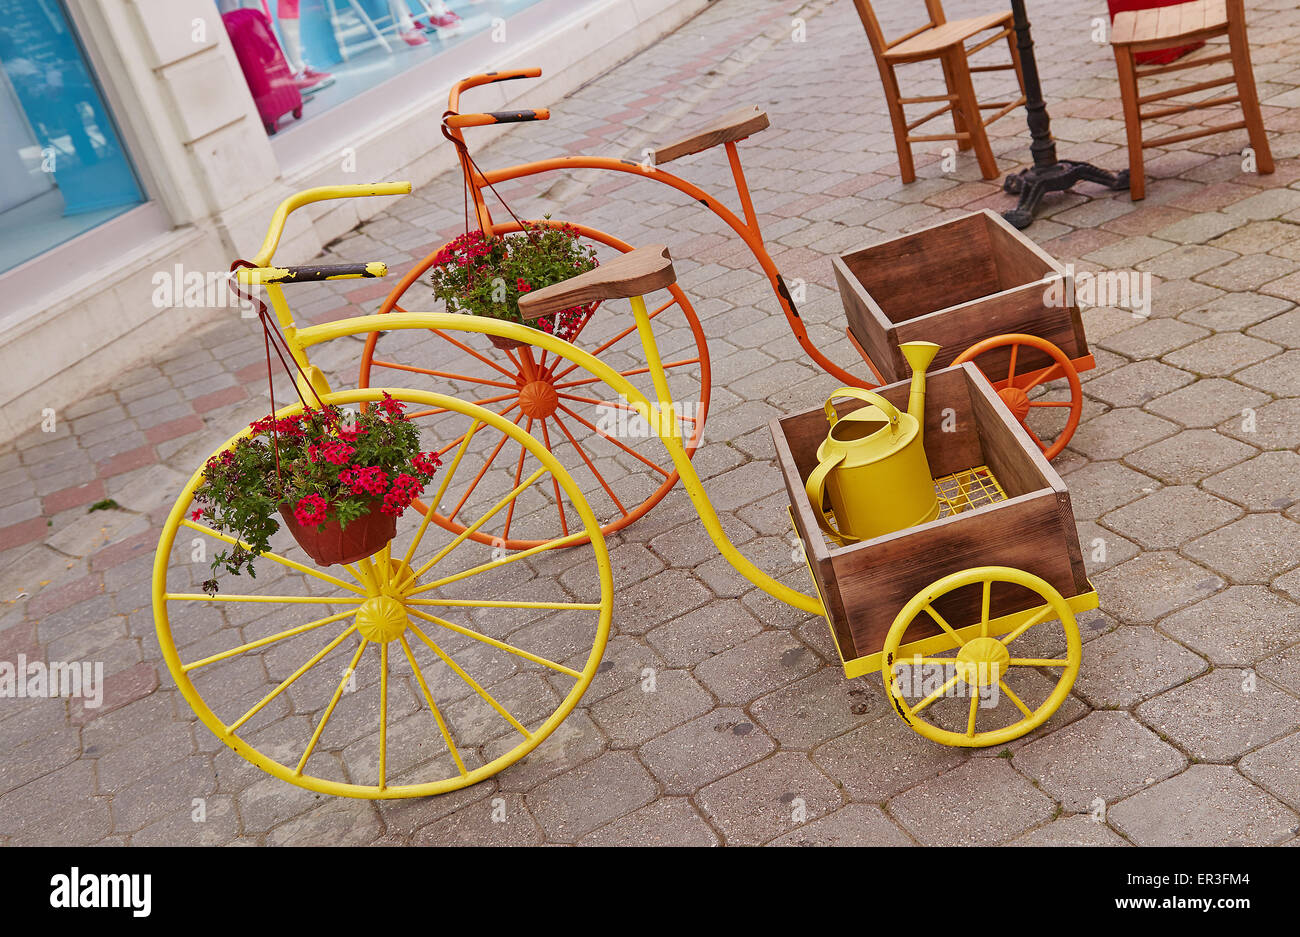 Ornamental Penny Farthing Tricycles Planters With Trugs On Display